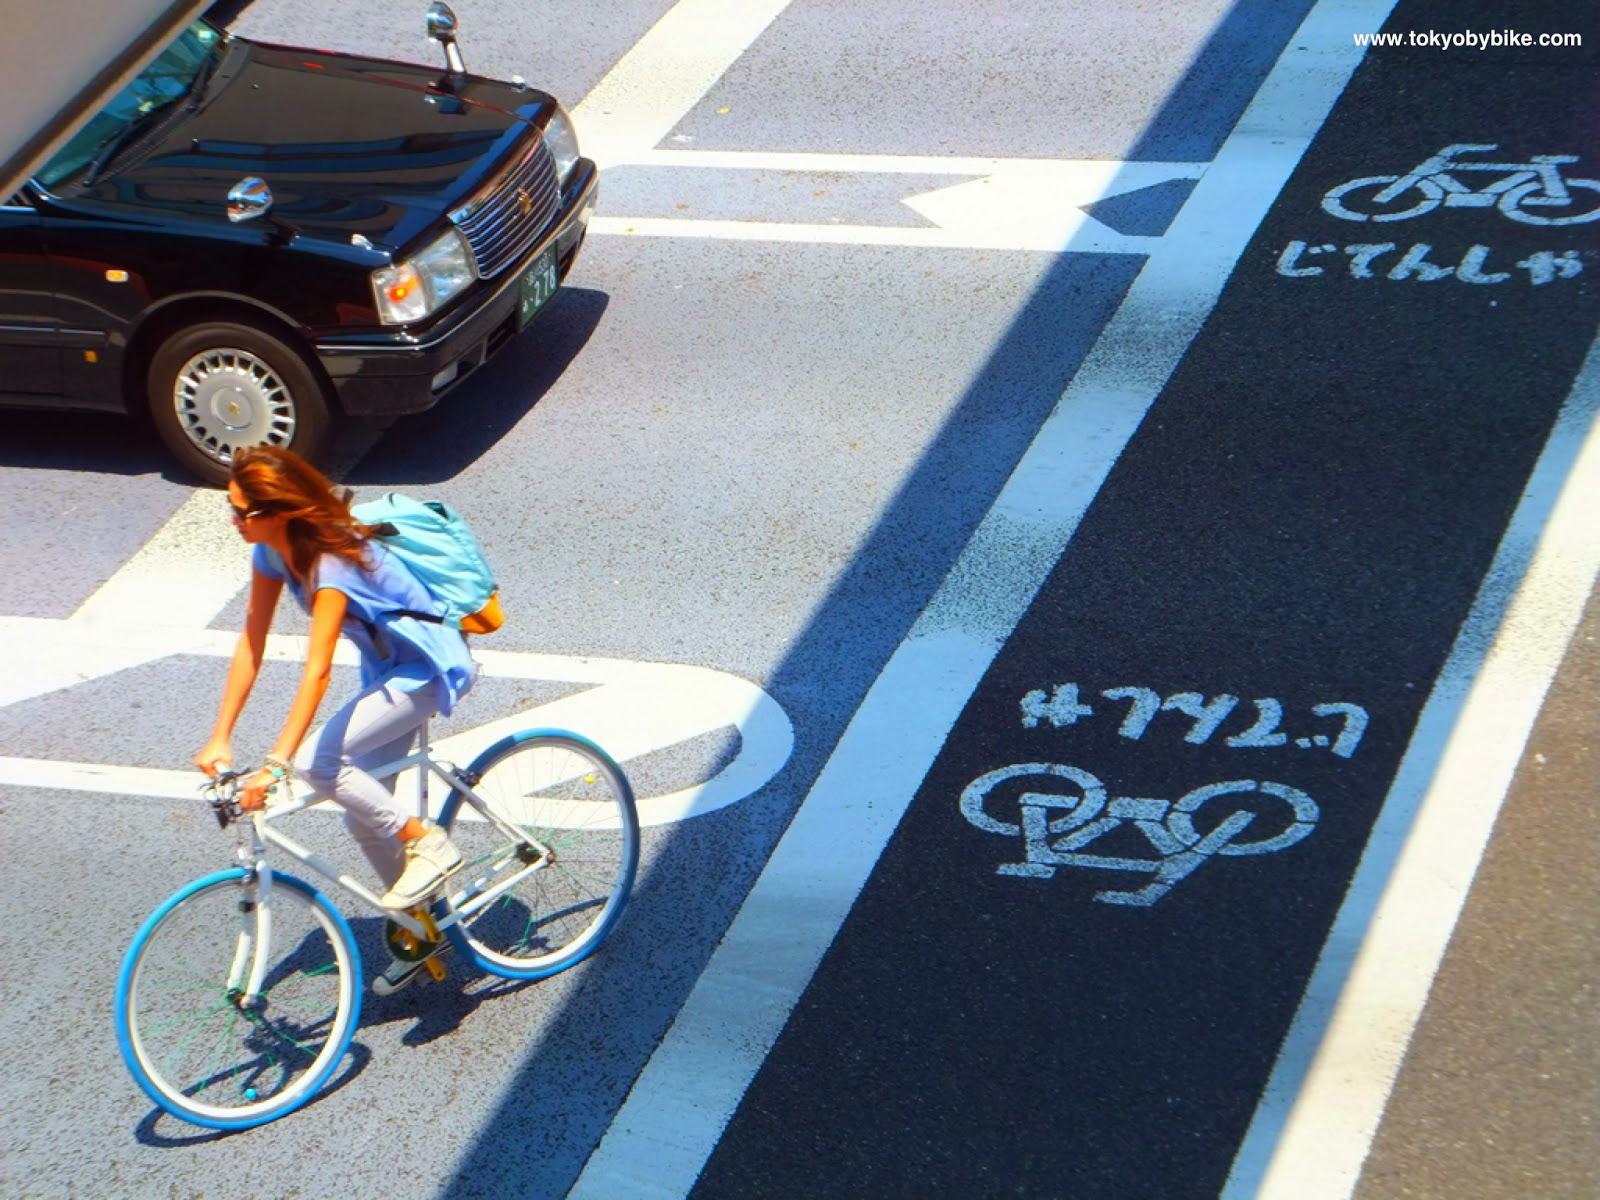 Japan S National Bike To Work Ban Tokyo By Bike Cycling News